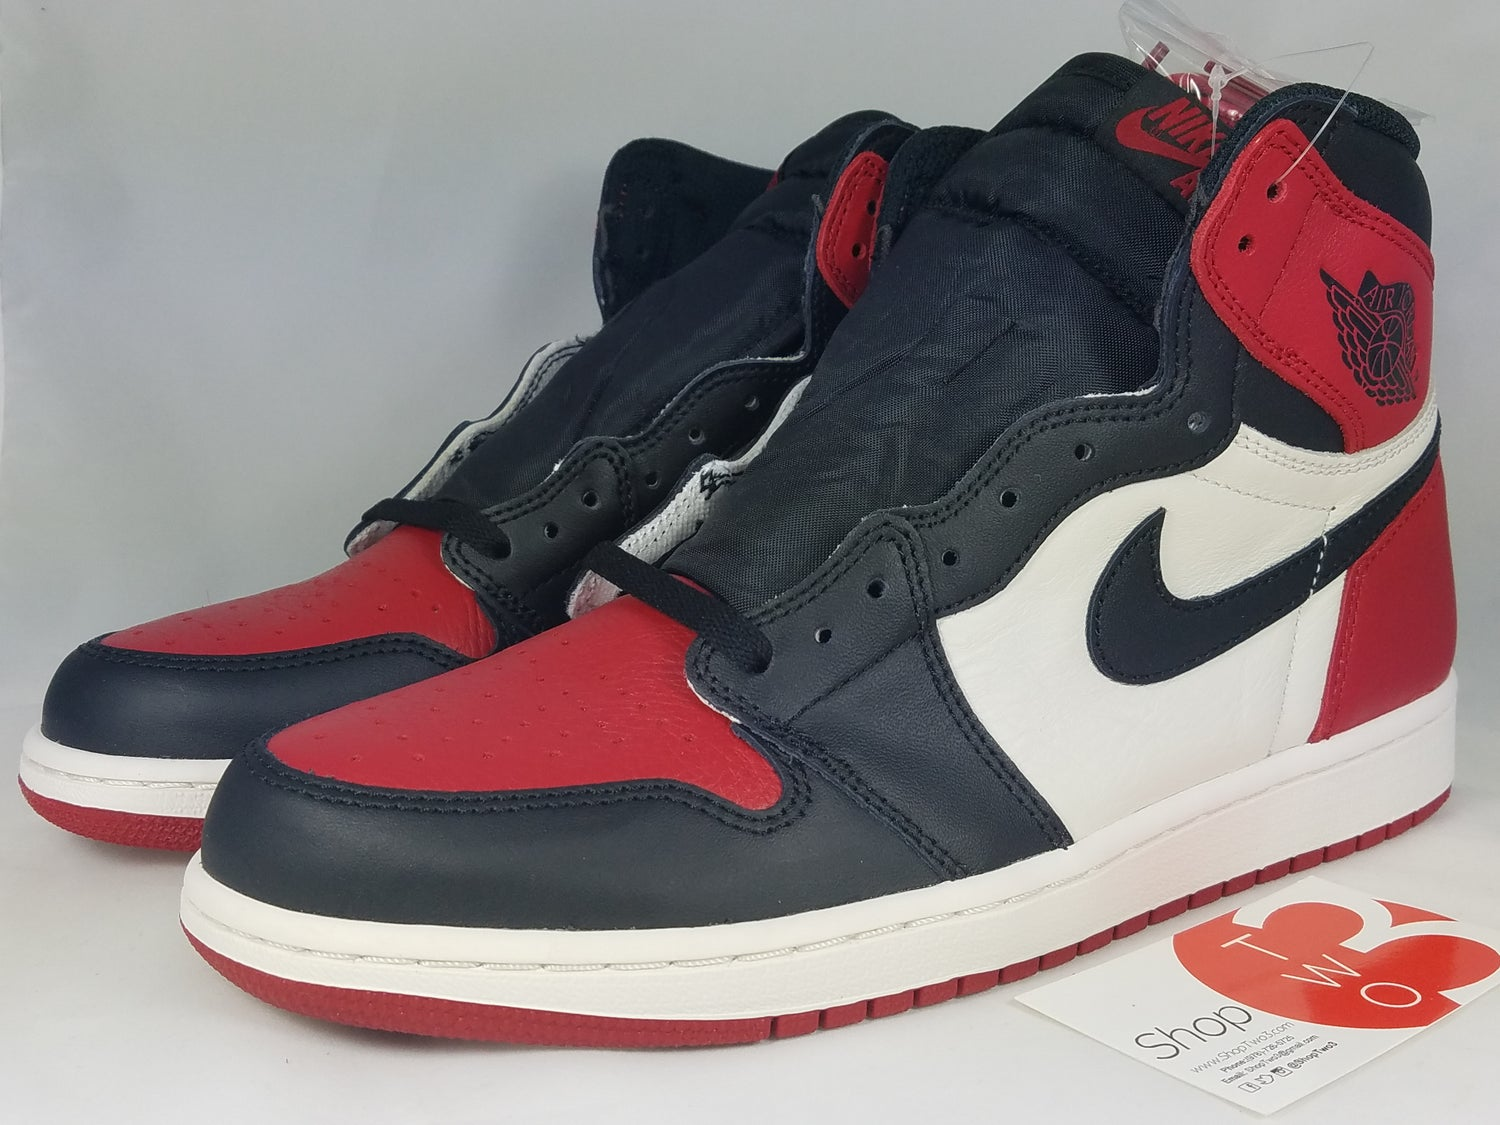 daac8ca28547 Image of Jordan 1 Retro High Bred Toe